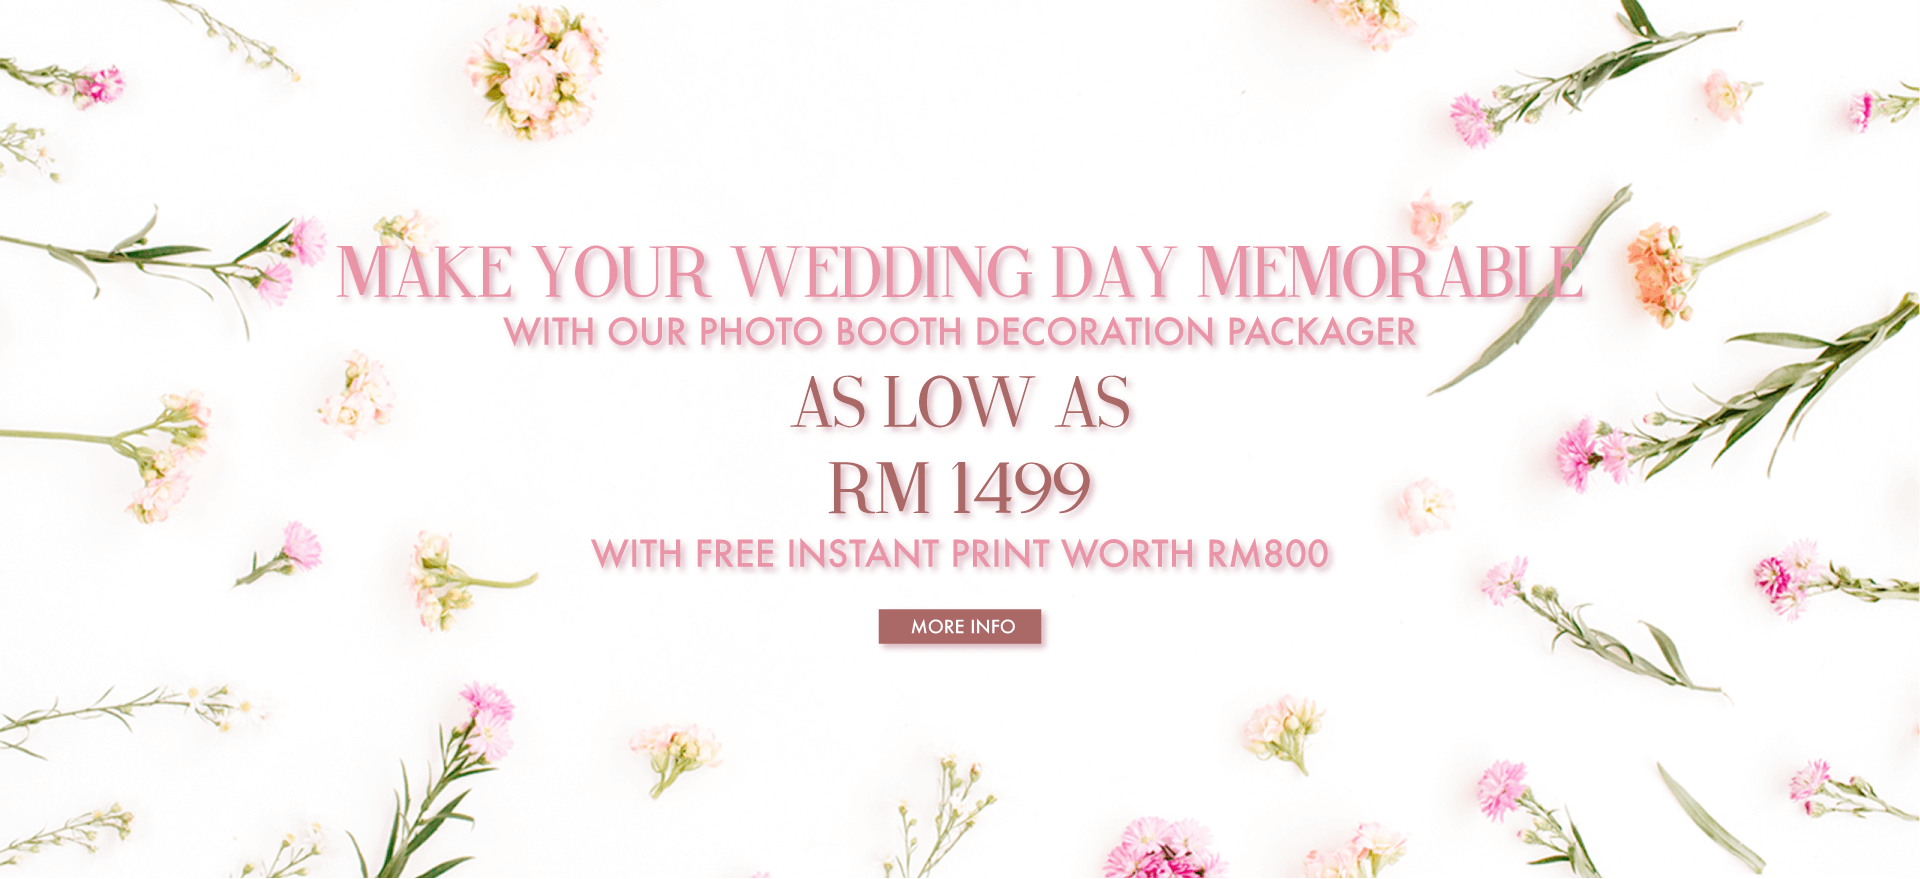 Photobooth Decoration + Free Instant Print Service